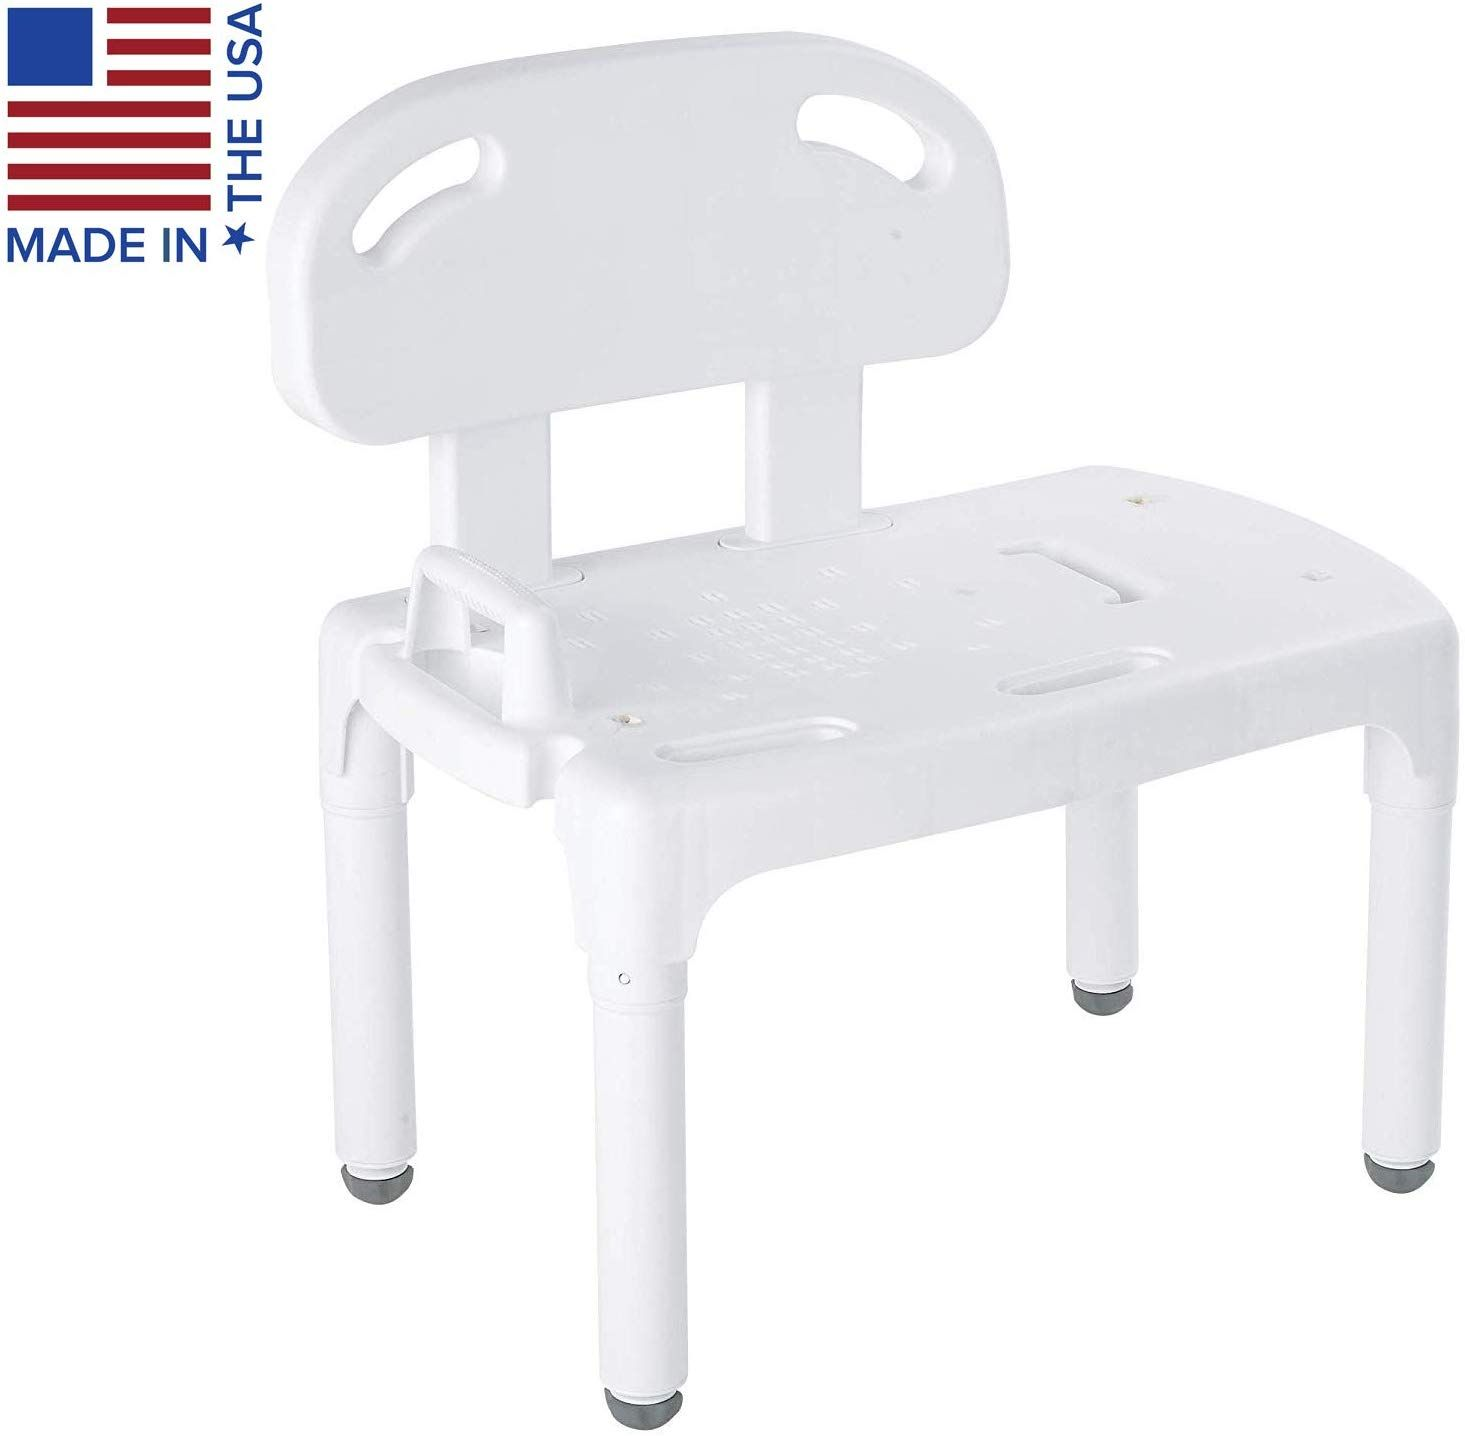 Carex Universal Tub Transfer Bench Shower Bench And Bath Seat Chair Converts To Right Or Lef Shower Chair Transfer Bench Bath Seats